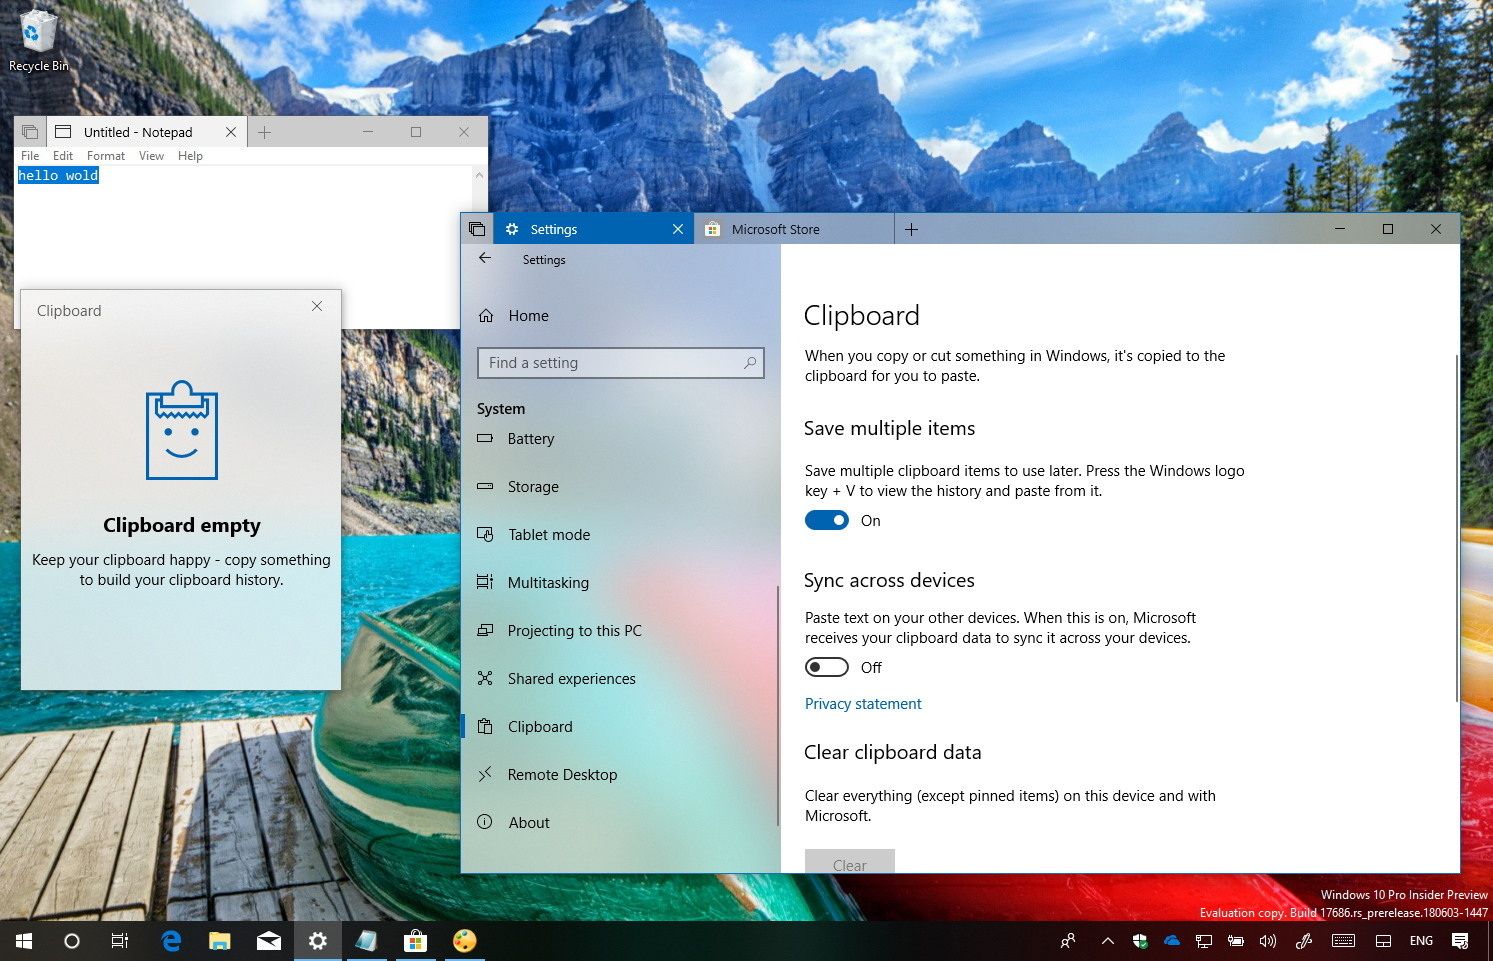 Clear clipboard history on Windows 10 version 1809